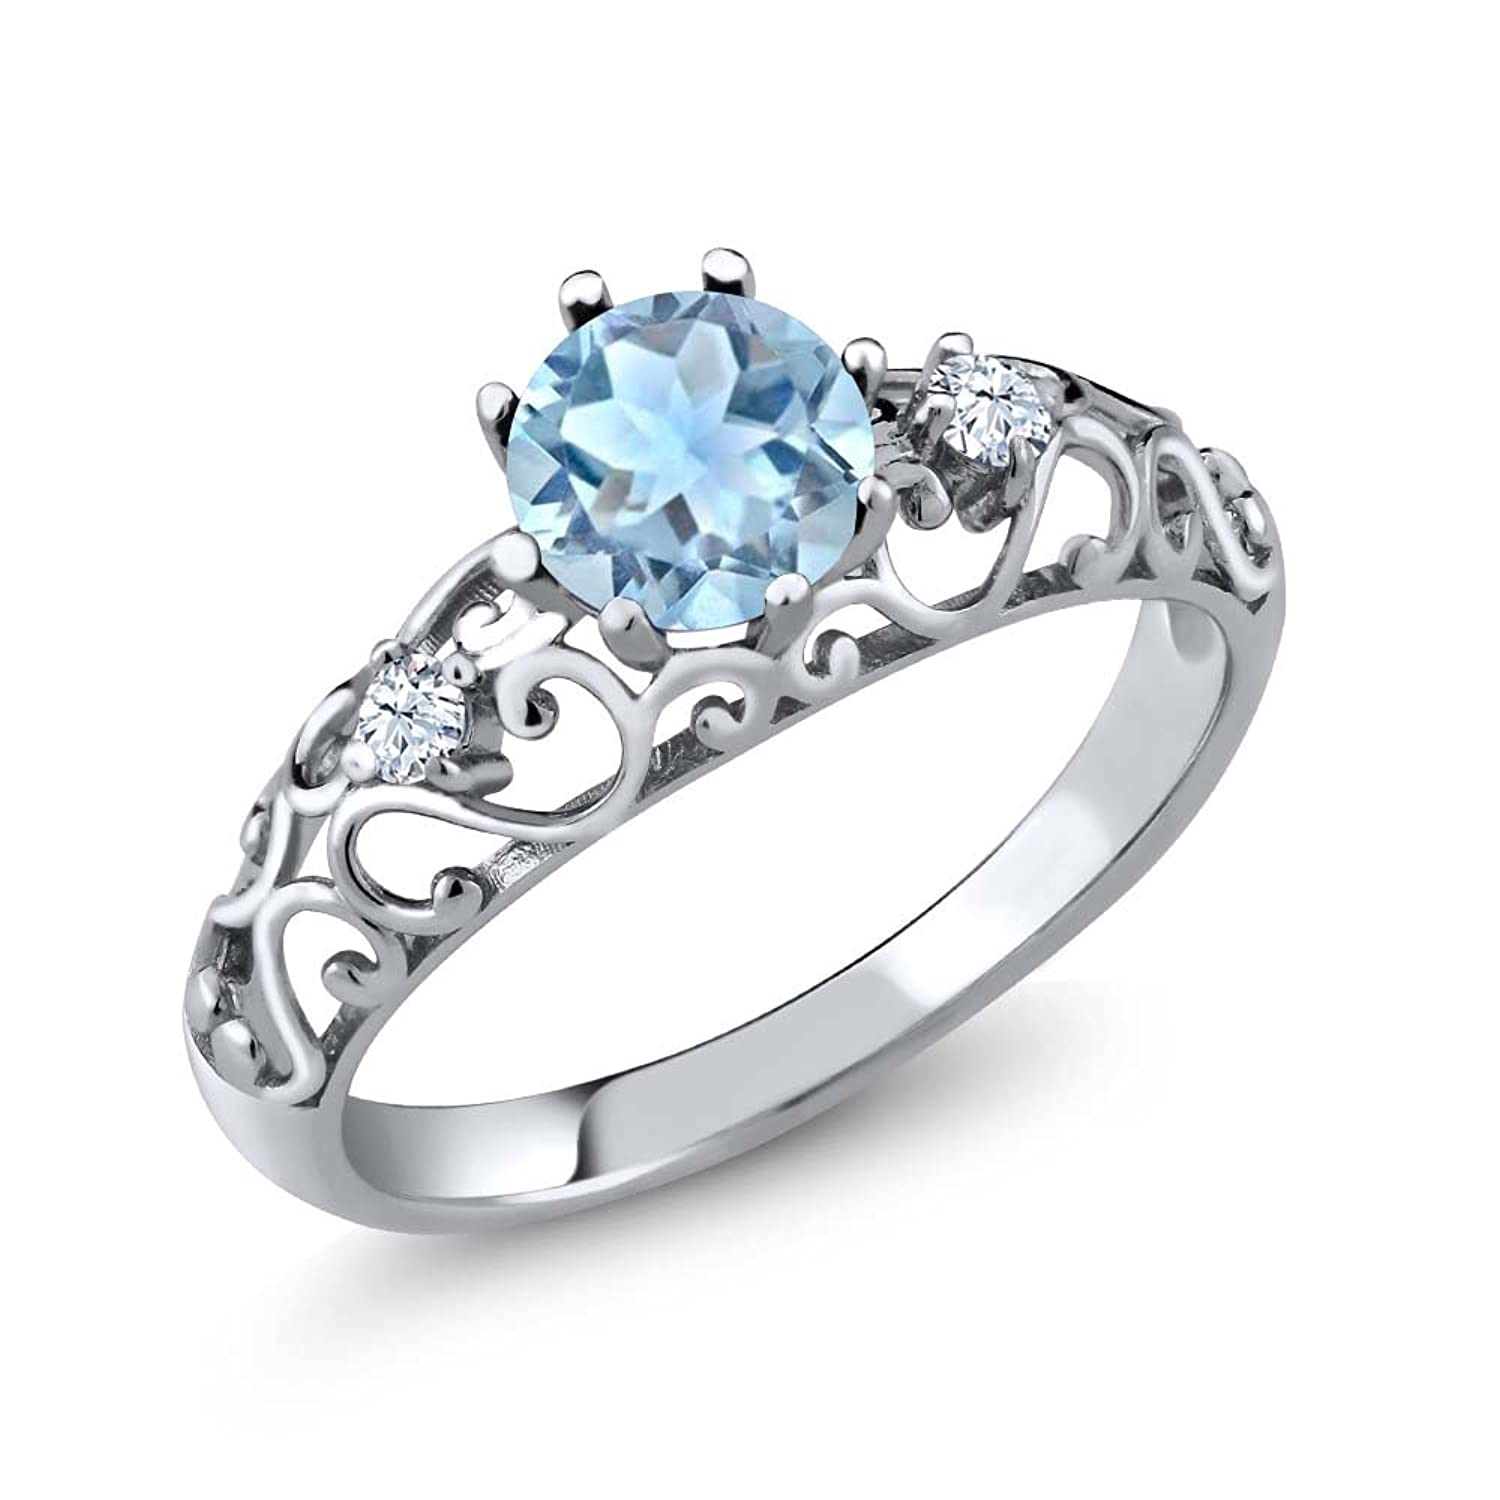 0.83 Ct Round Natural Sky Blue Aquamarine 925 Sterling Silver Women's Ring (Available in size 5, 6, 7, 8, 9)